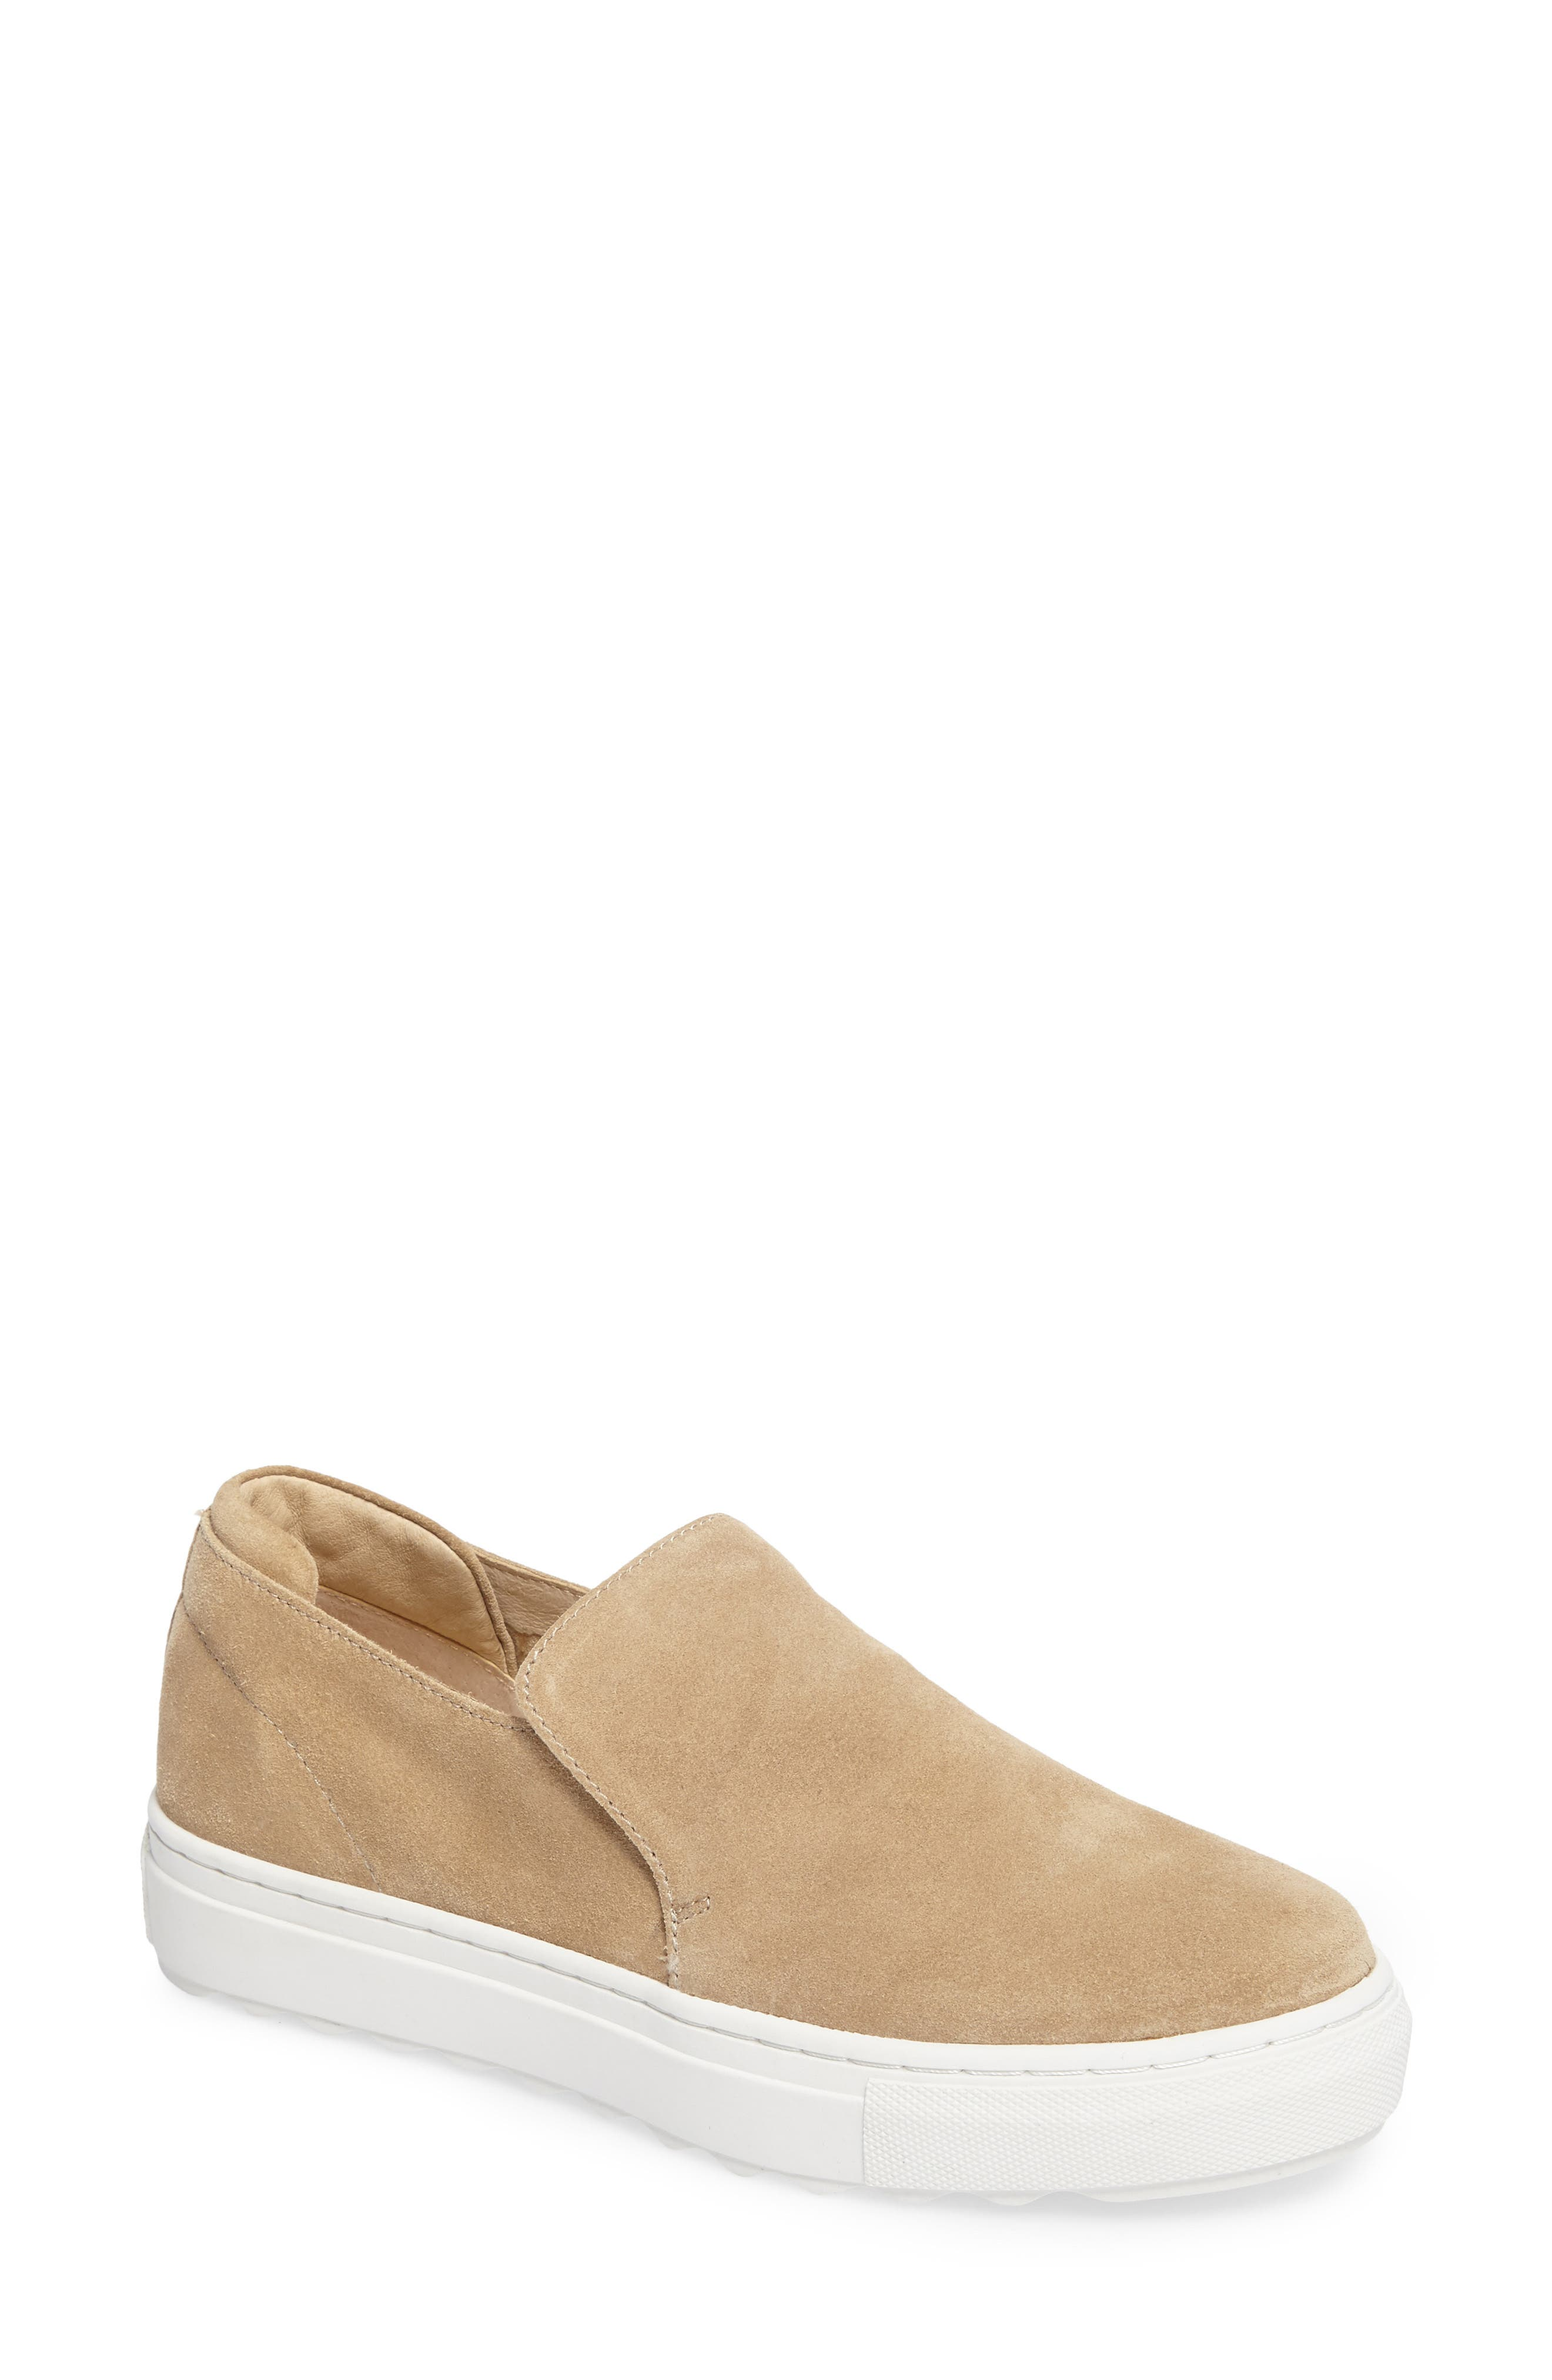 Perrie Platform Slip-On,                             Main thumbnail 5, color,